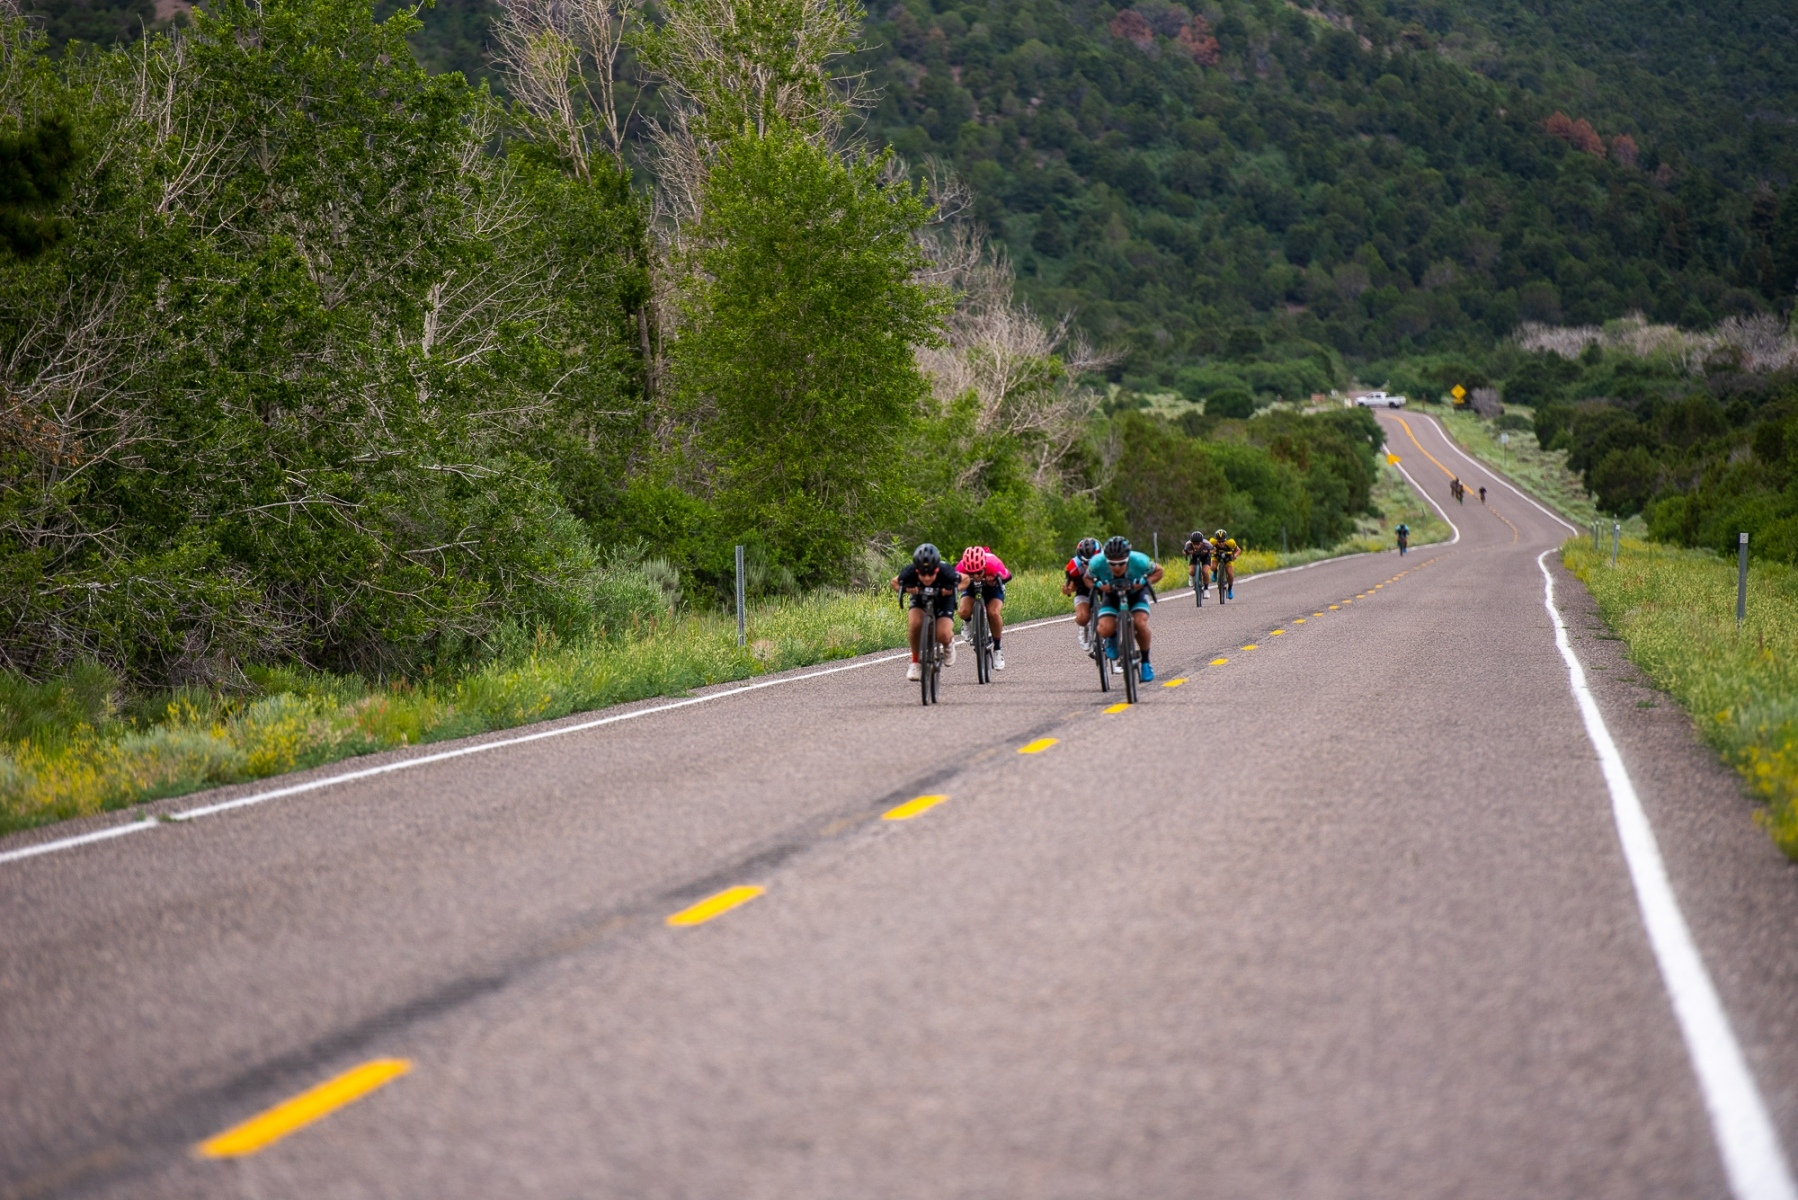 The Pro men's field split into several small groups on the Highway 153 descent into Junction. Photo: Steven L. Sheffield